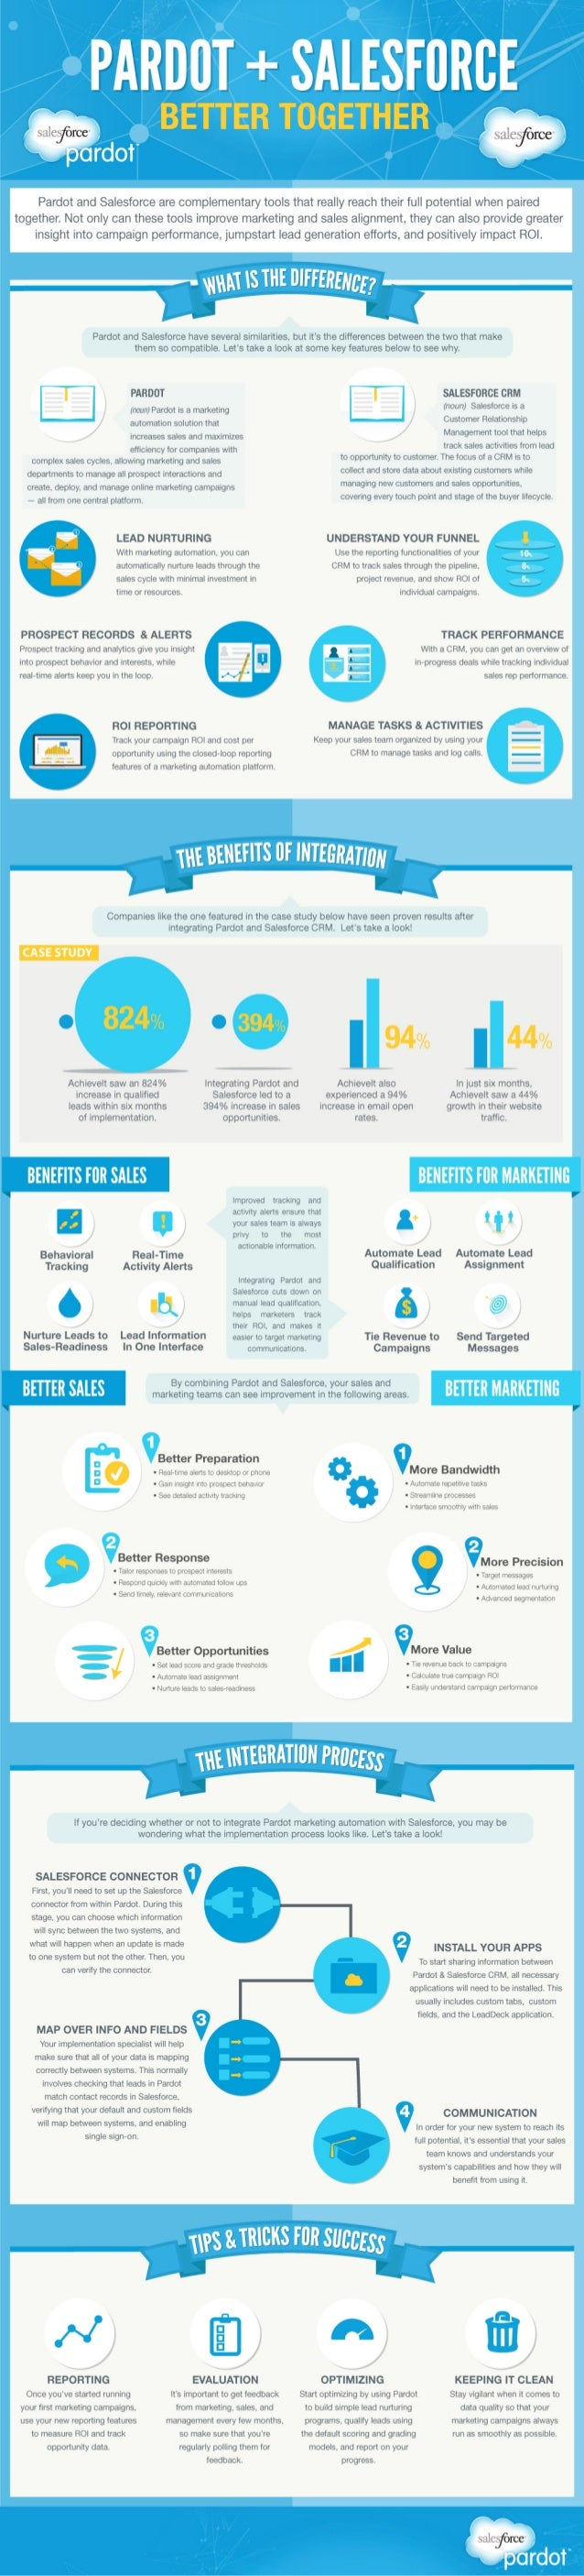 Pardot + Salesforce: Better Together [Infographic]